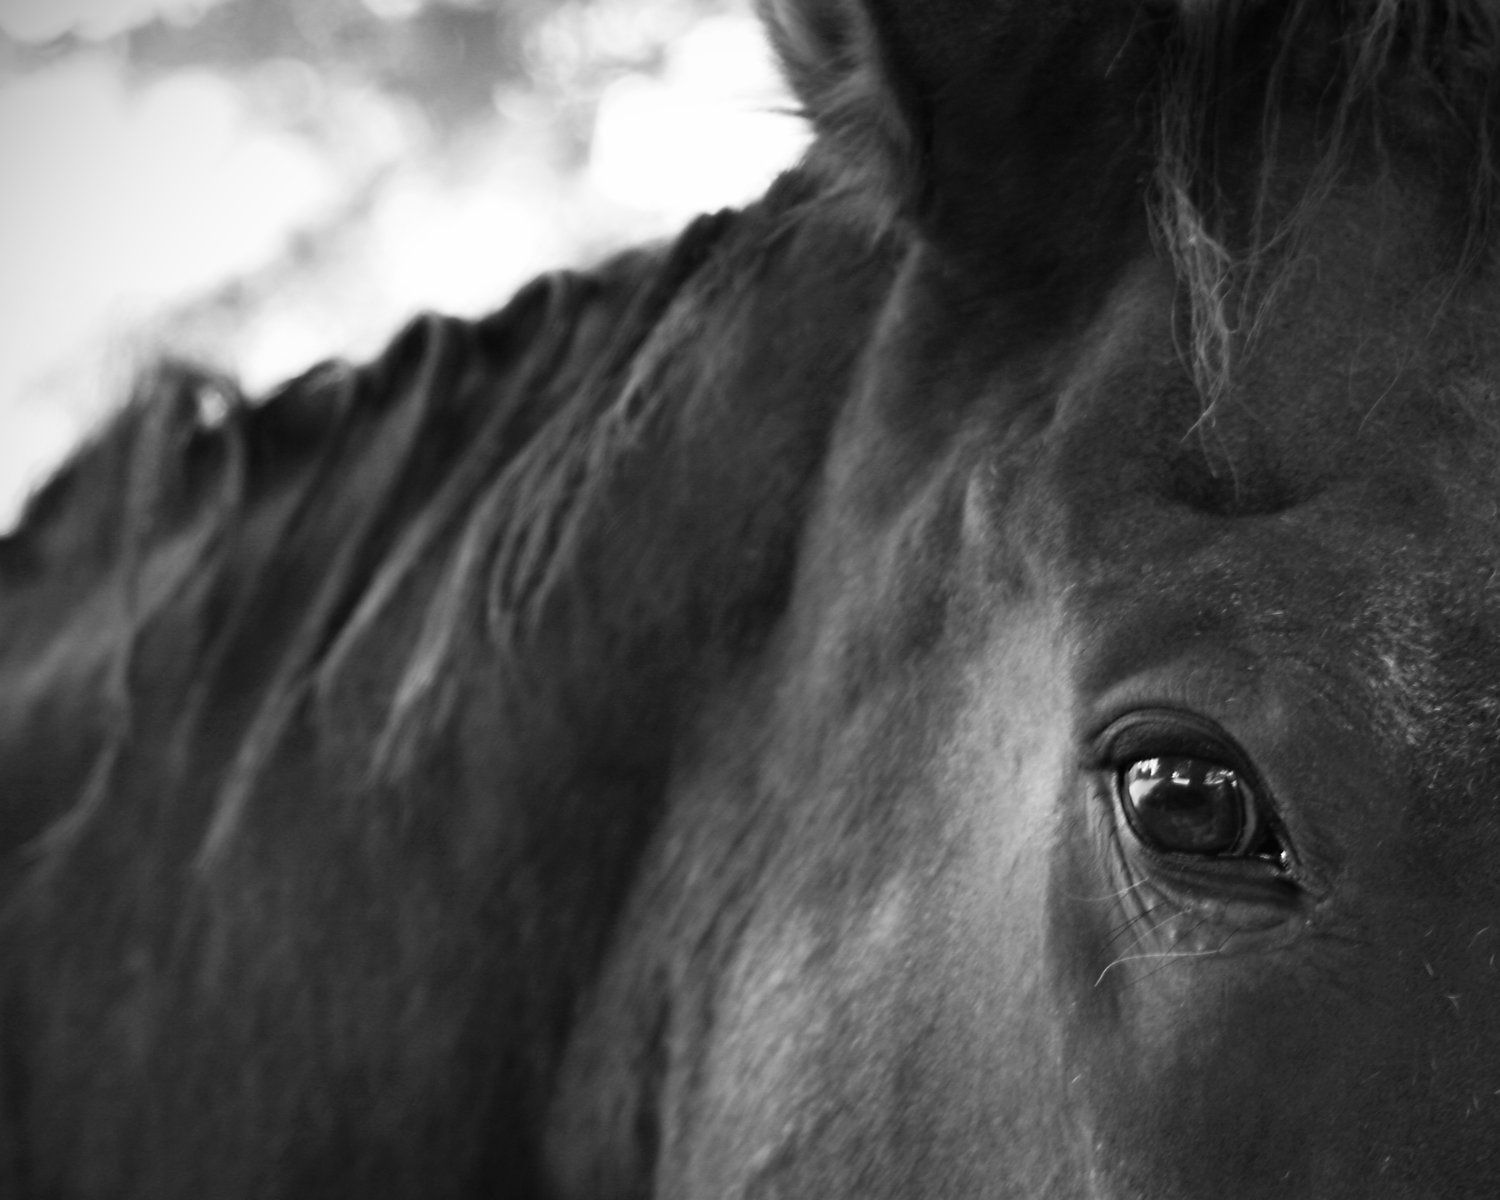 horse photography black and white nature animals. Black Bedroom Furniture Sets. Home Design Ideas